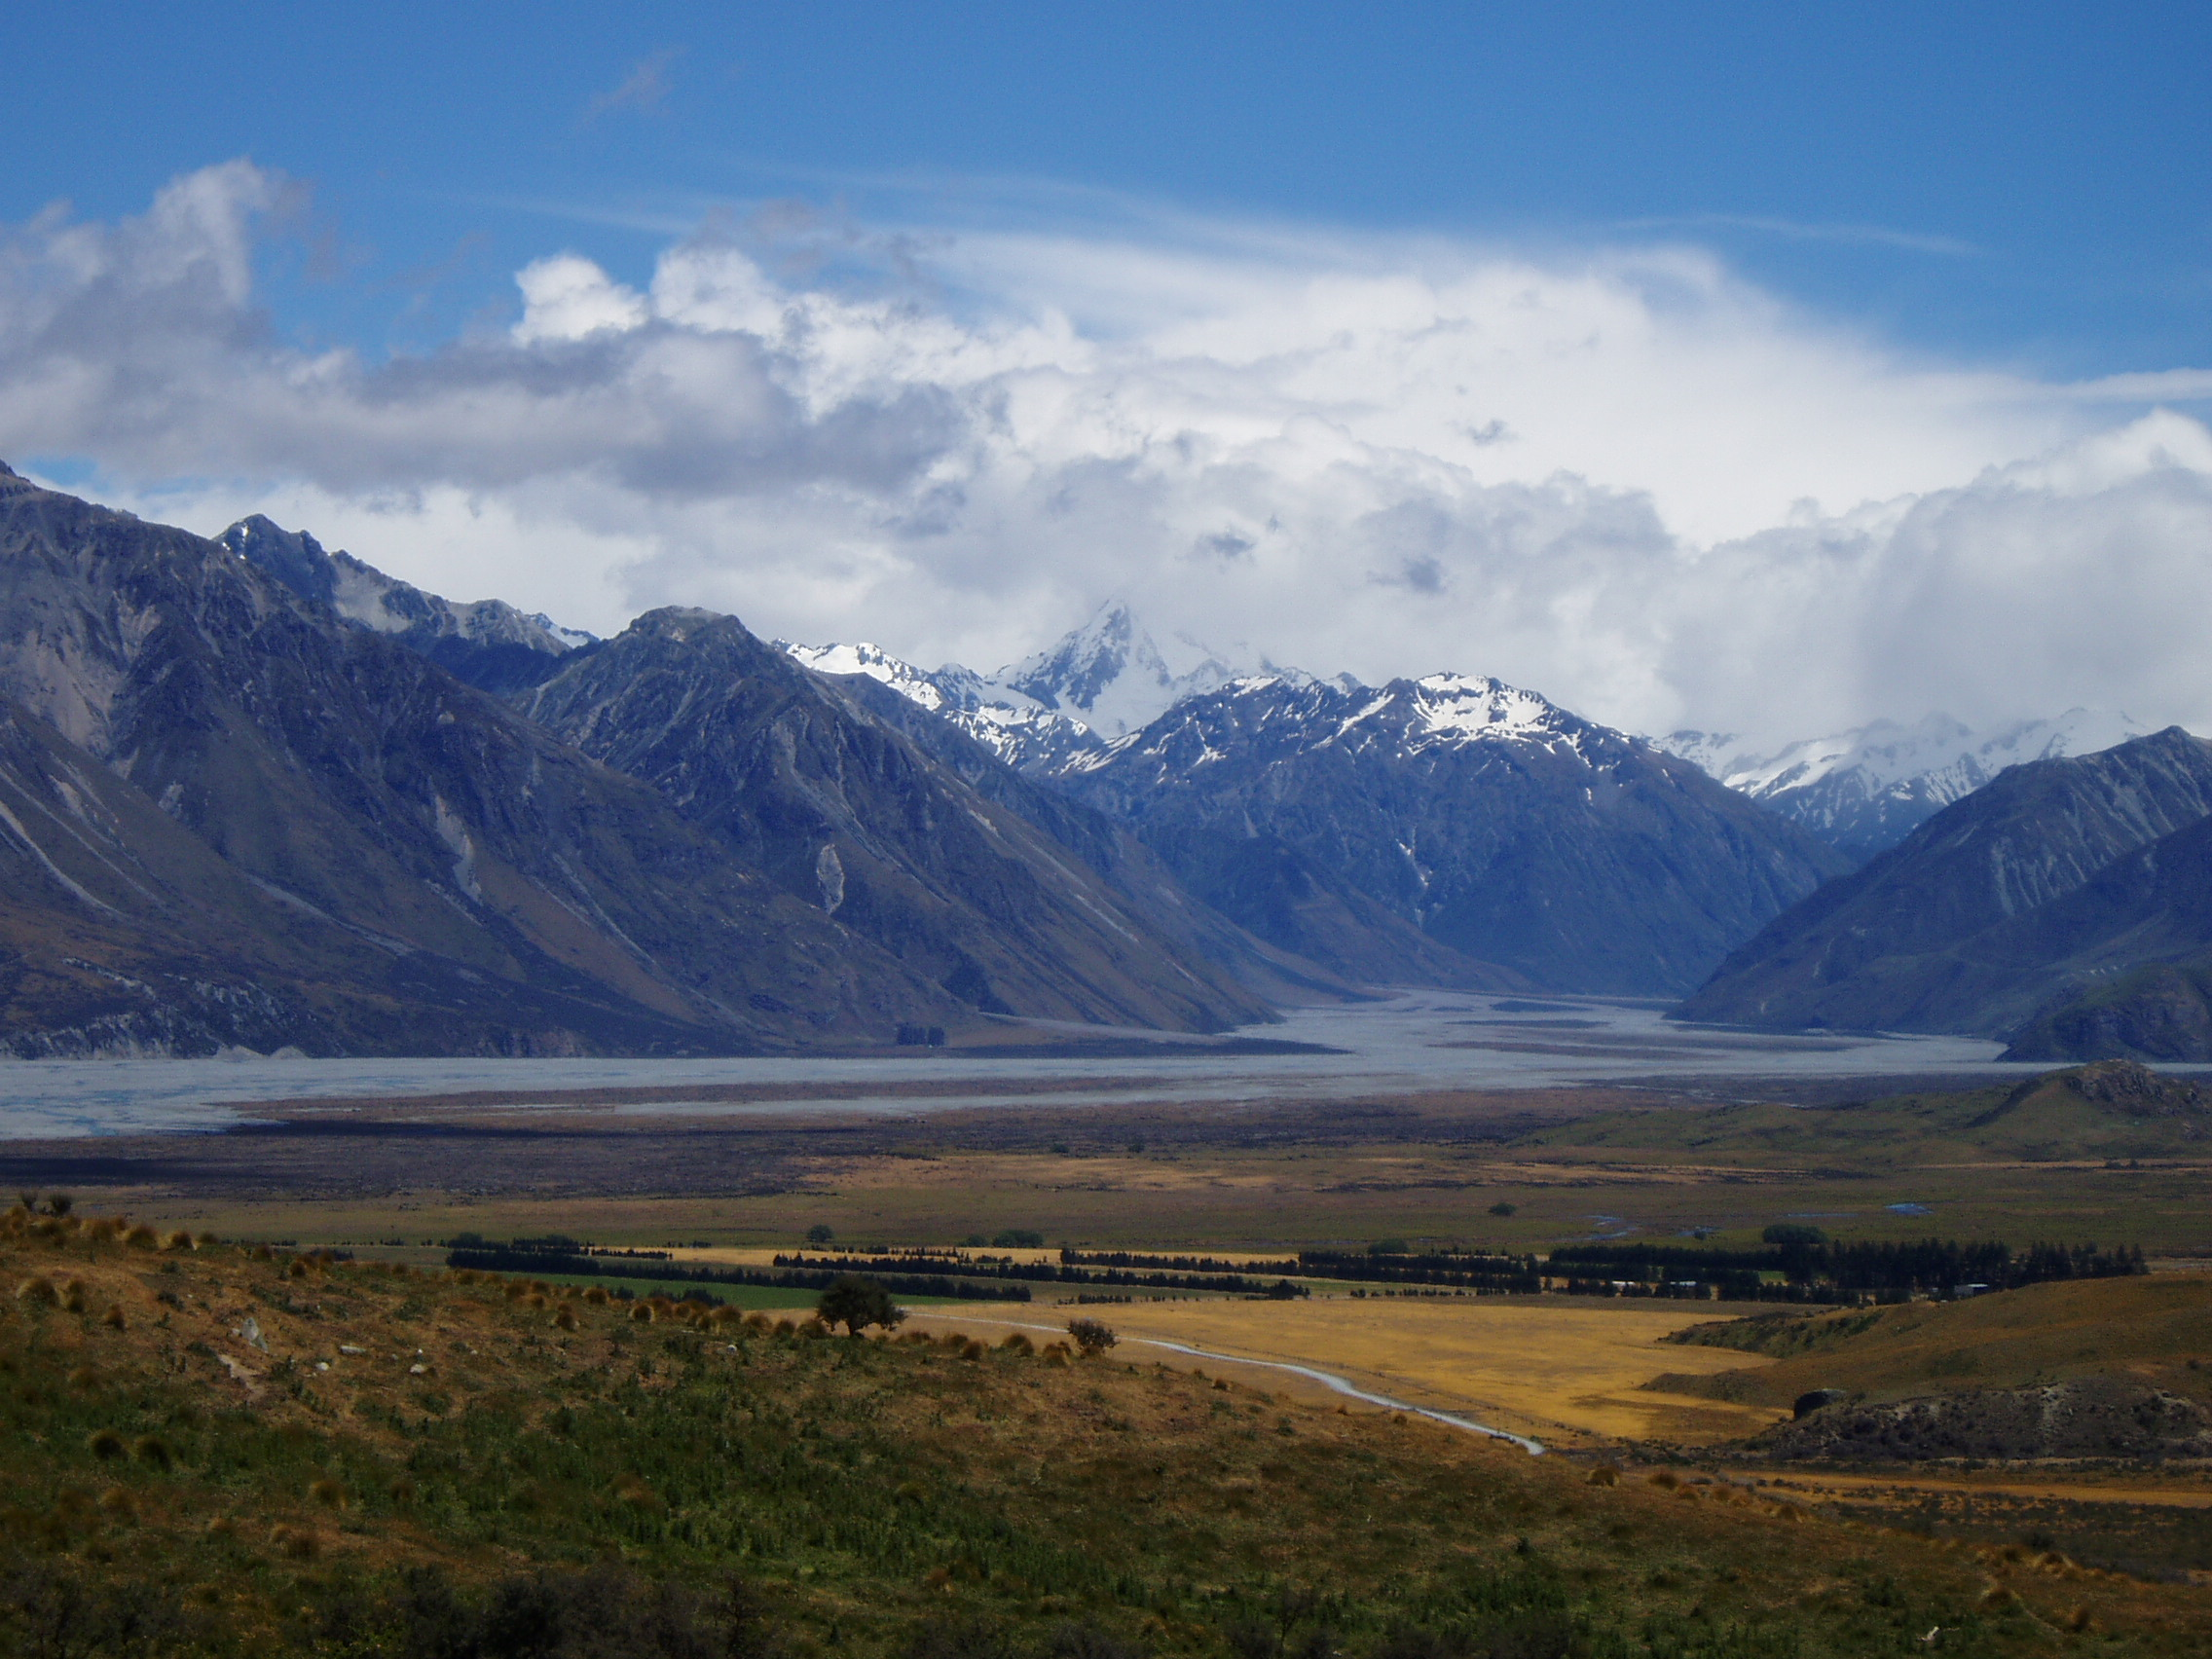 Rangitata Valley, film site for Edoras.